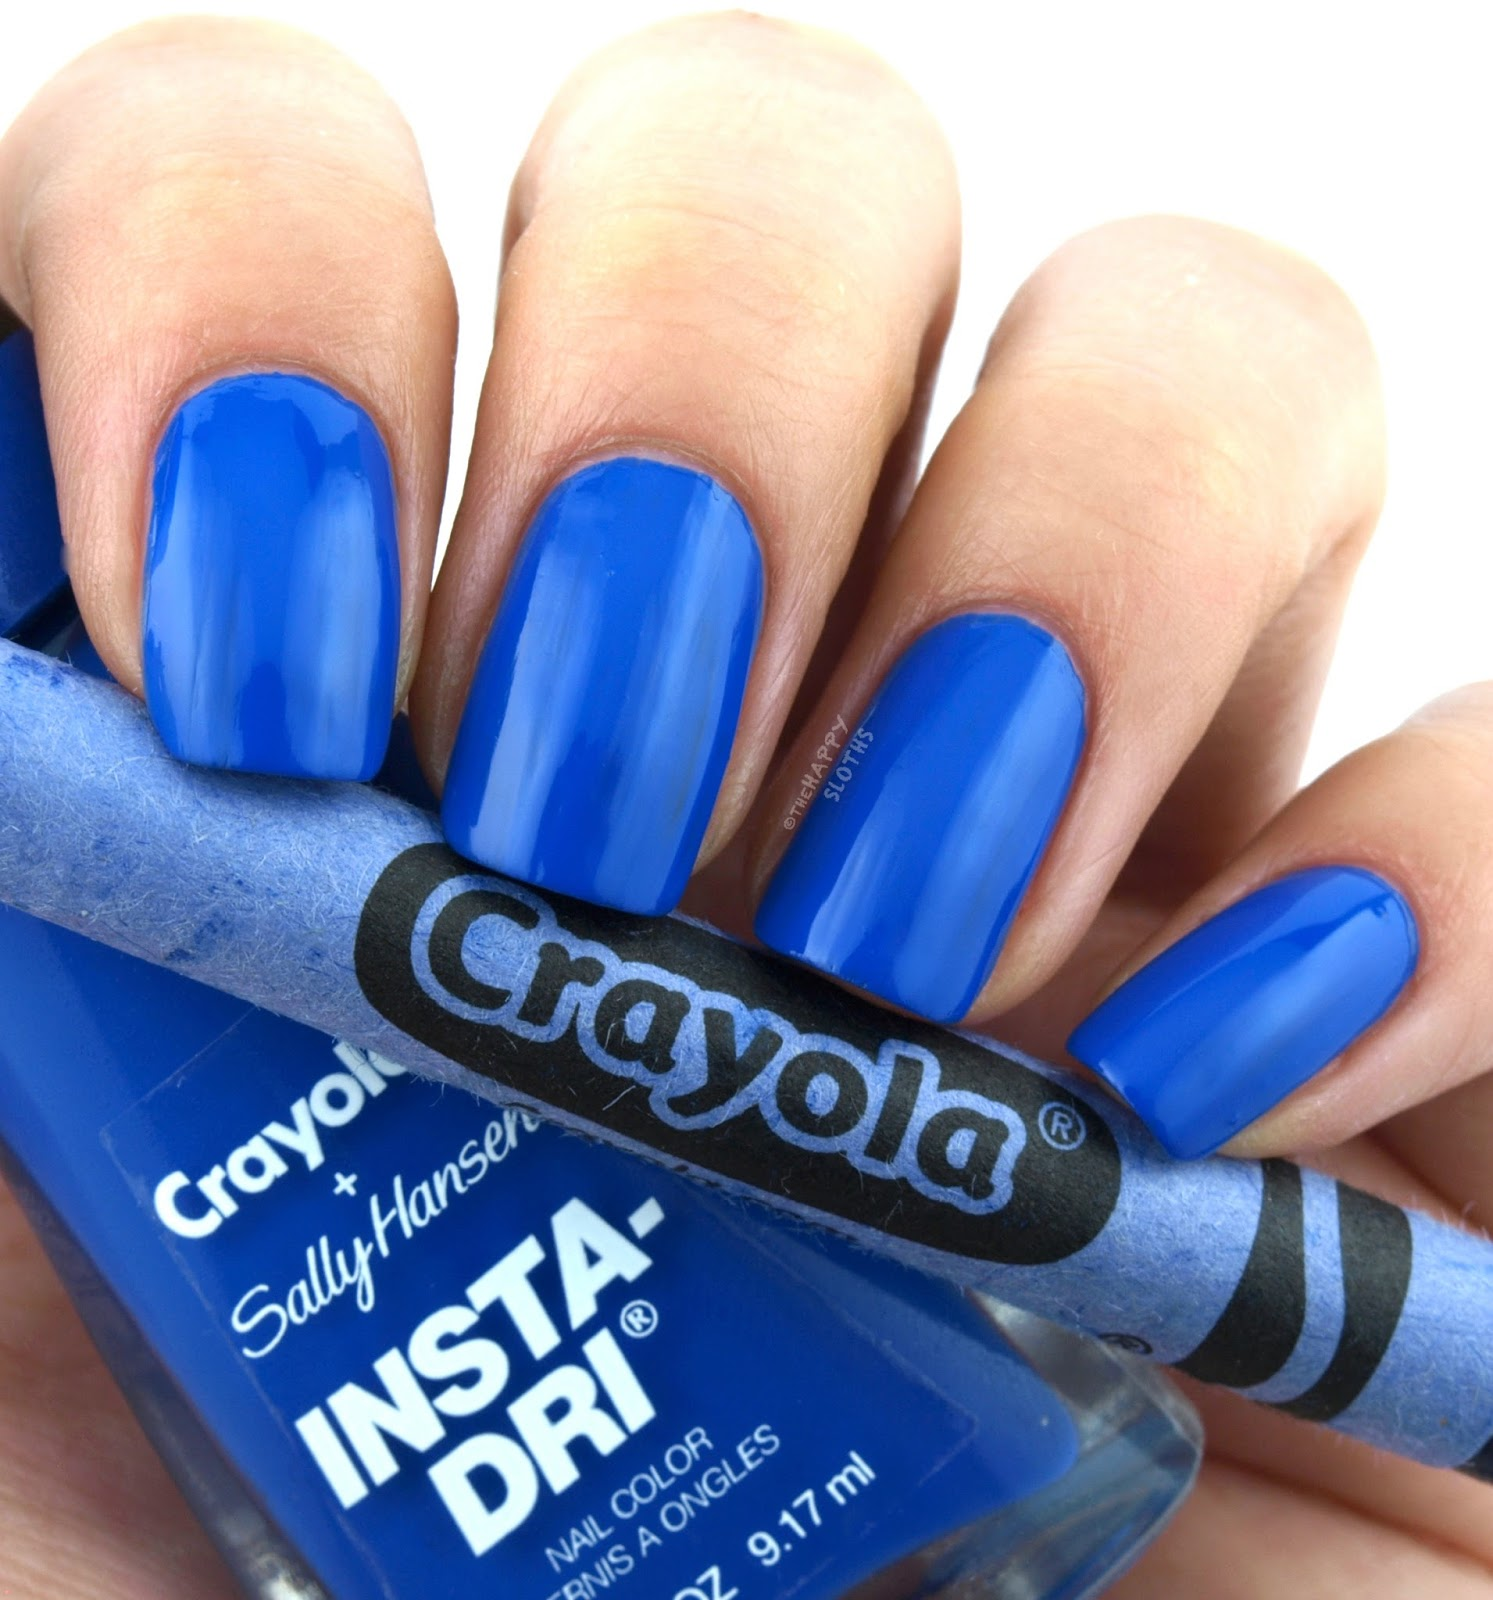 Sally Hansen + Crayola Collection | 512 Denim: Review and Swatches